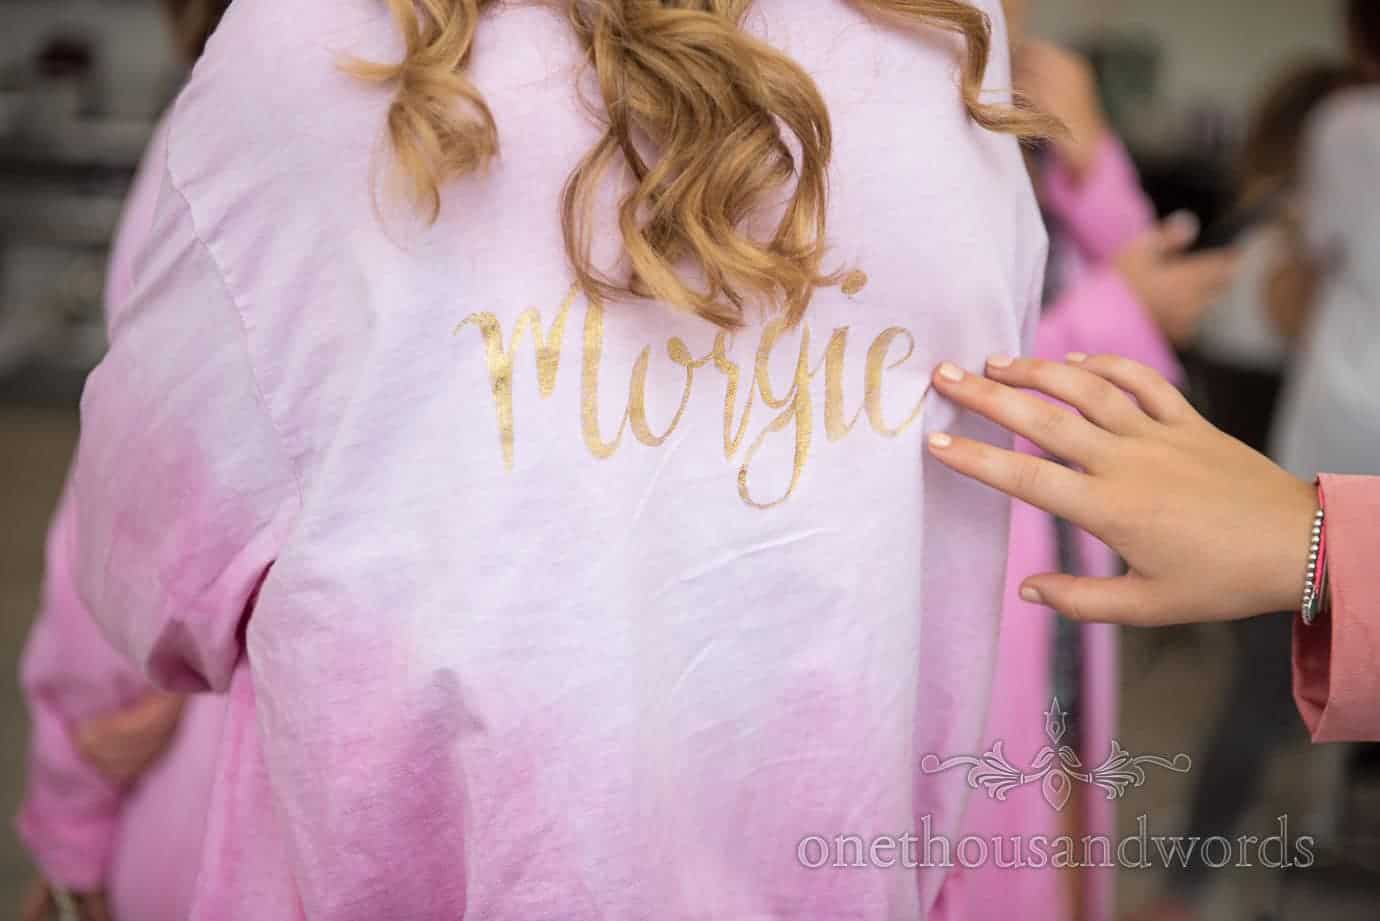 Pink bridesmaids dressing gown with gold script name lettering on back